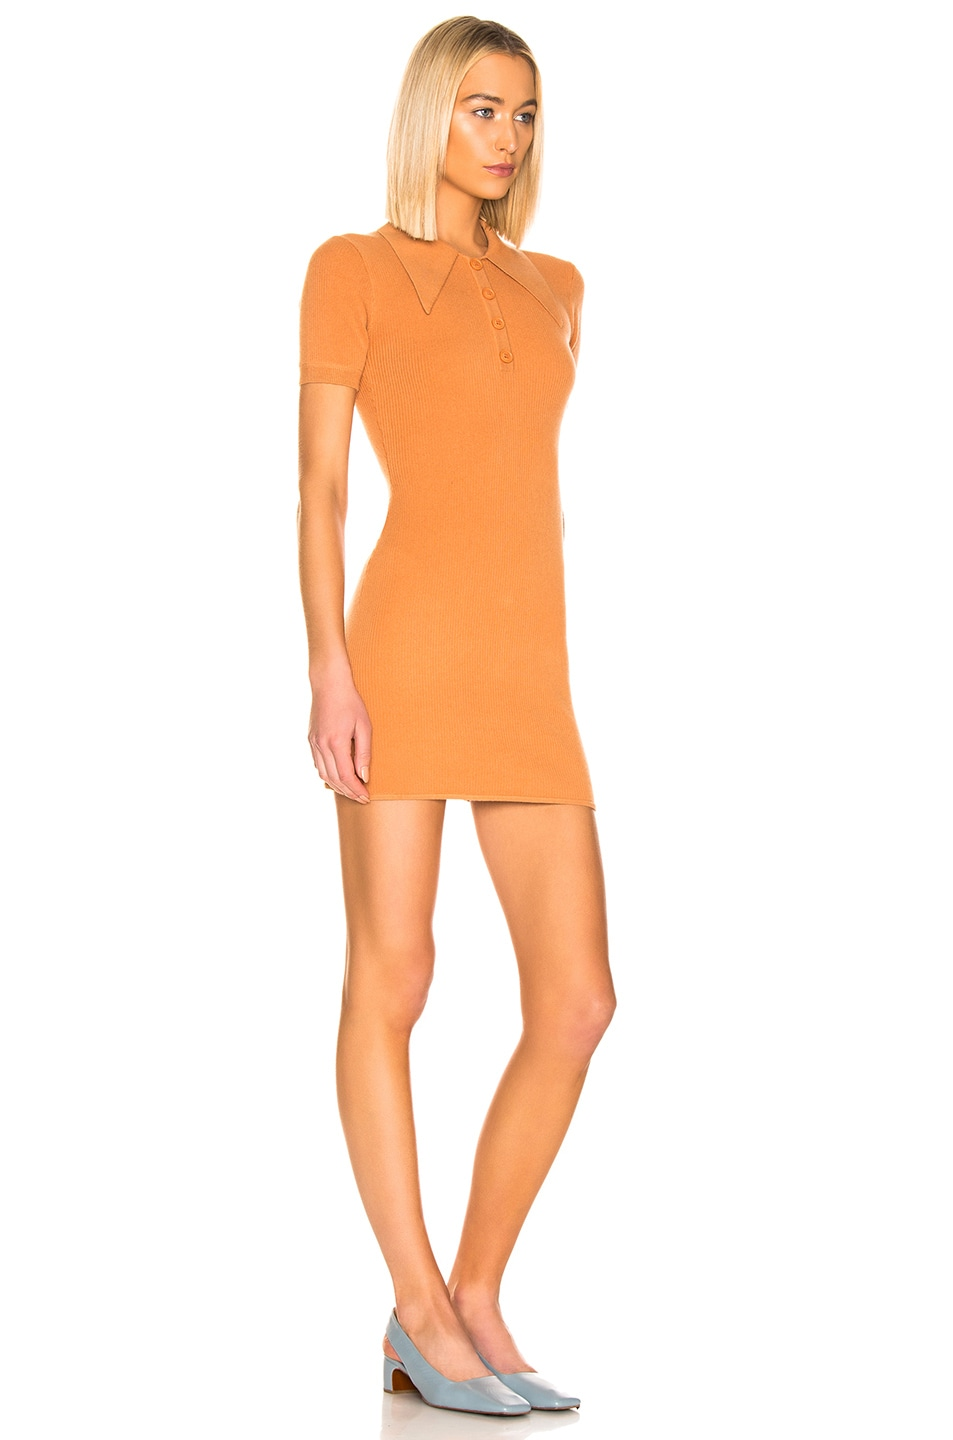 Image 2 of JoosTricot Polo Dress in Caramel Sauce